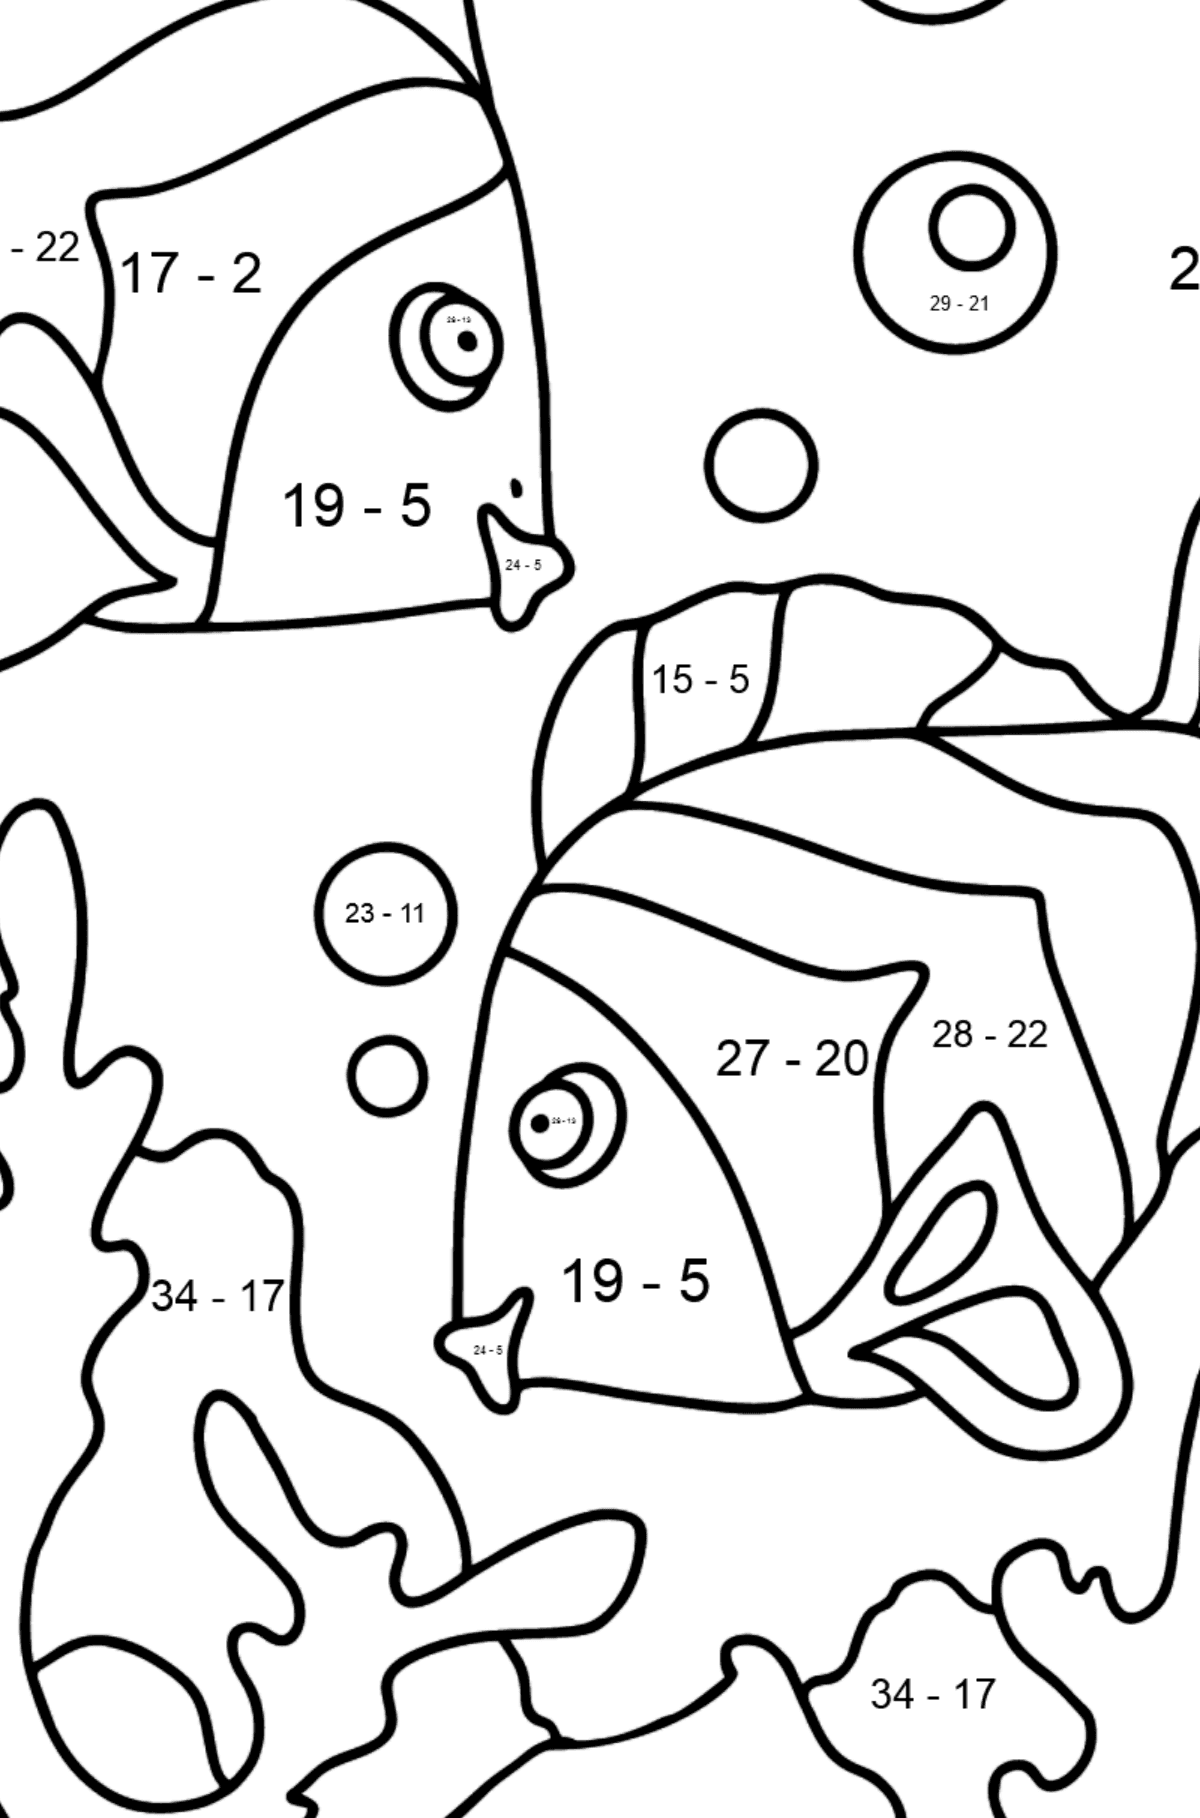 Coloring Page - Fish are Swimming Together - Math Coloring - Subtraction for Kids